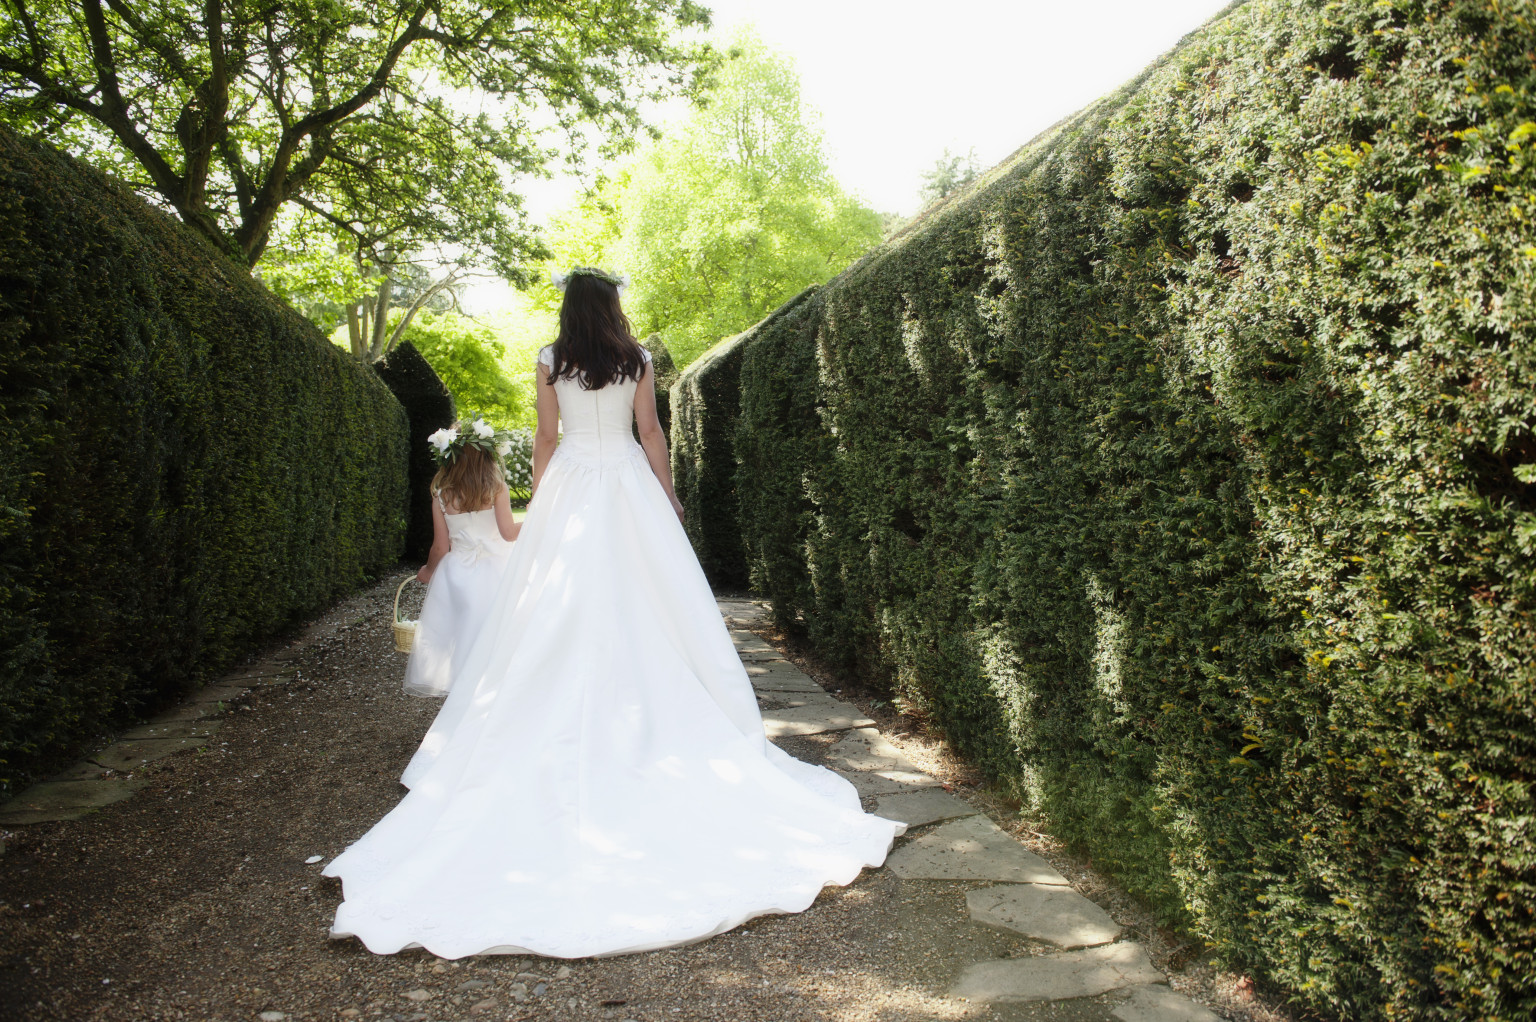 5 Unique Songs To Walk Down The Aisle